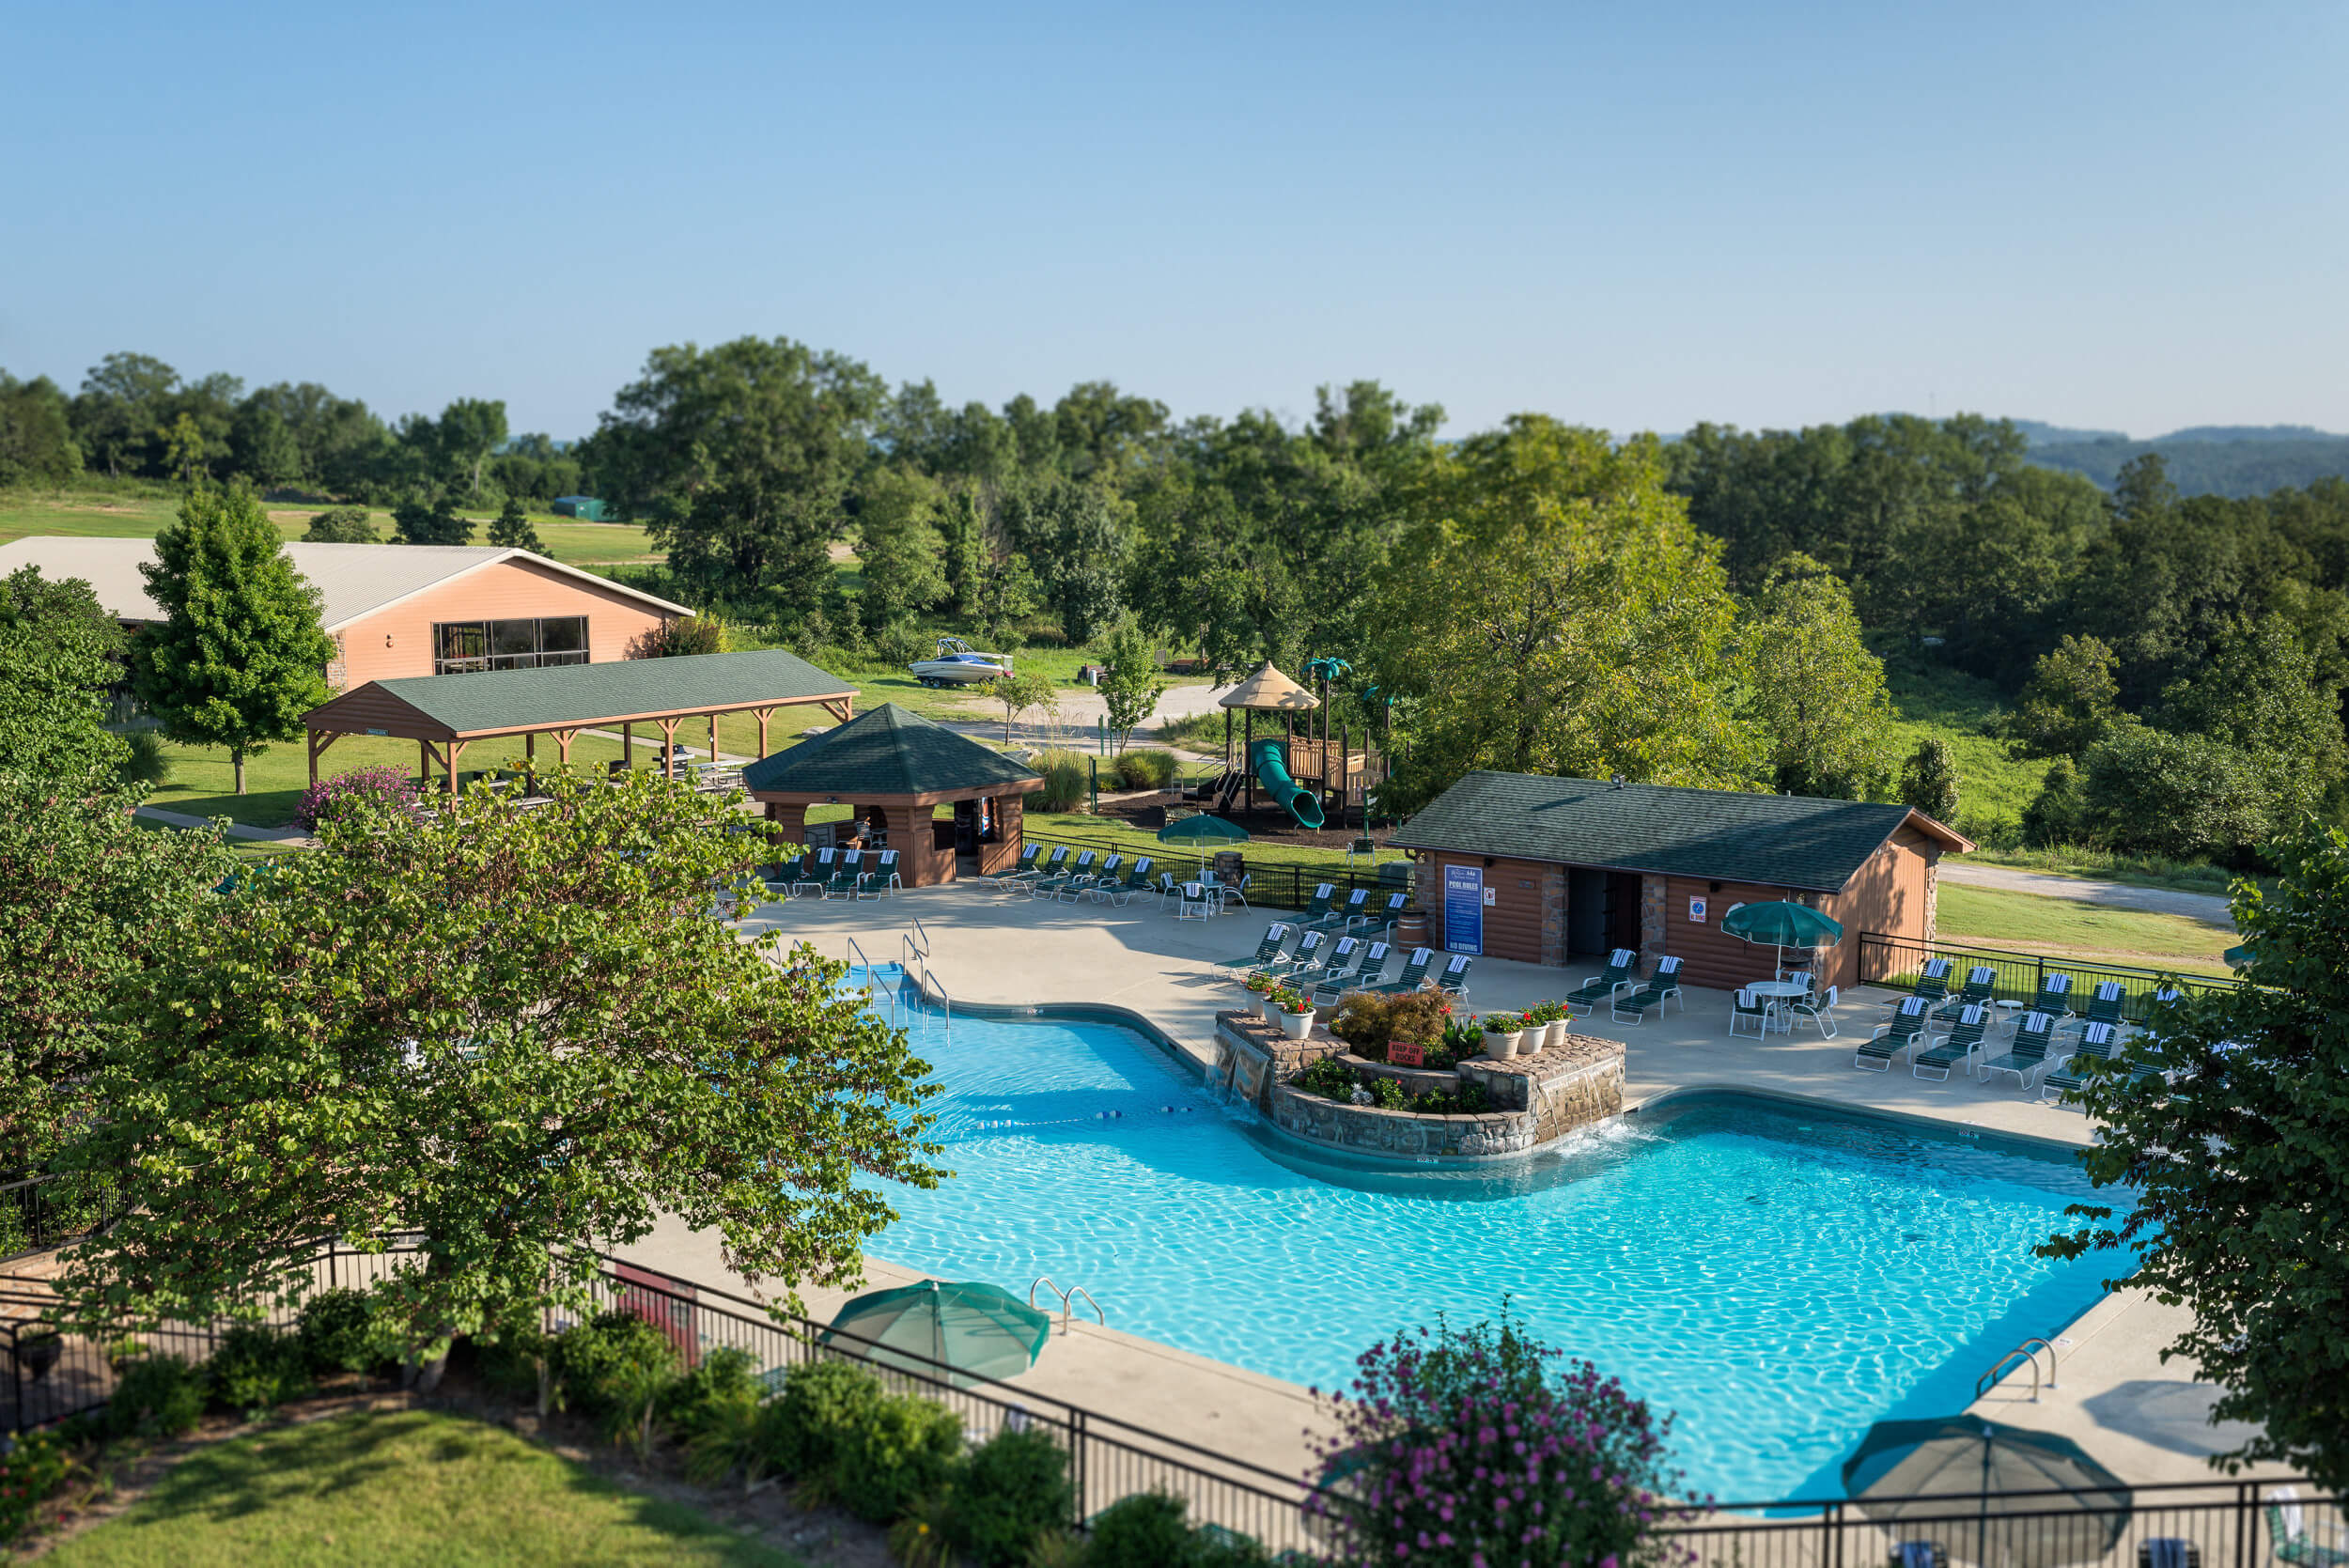 Outdoor pool with waterfall and lounge chairs | Westgate Branson Woods Resort